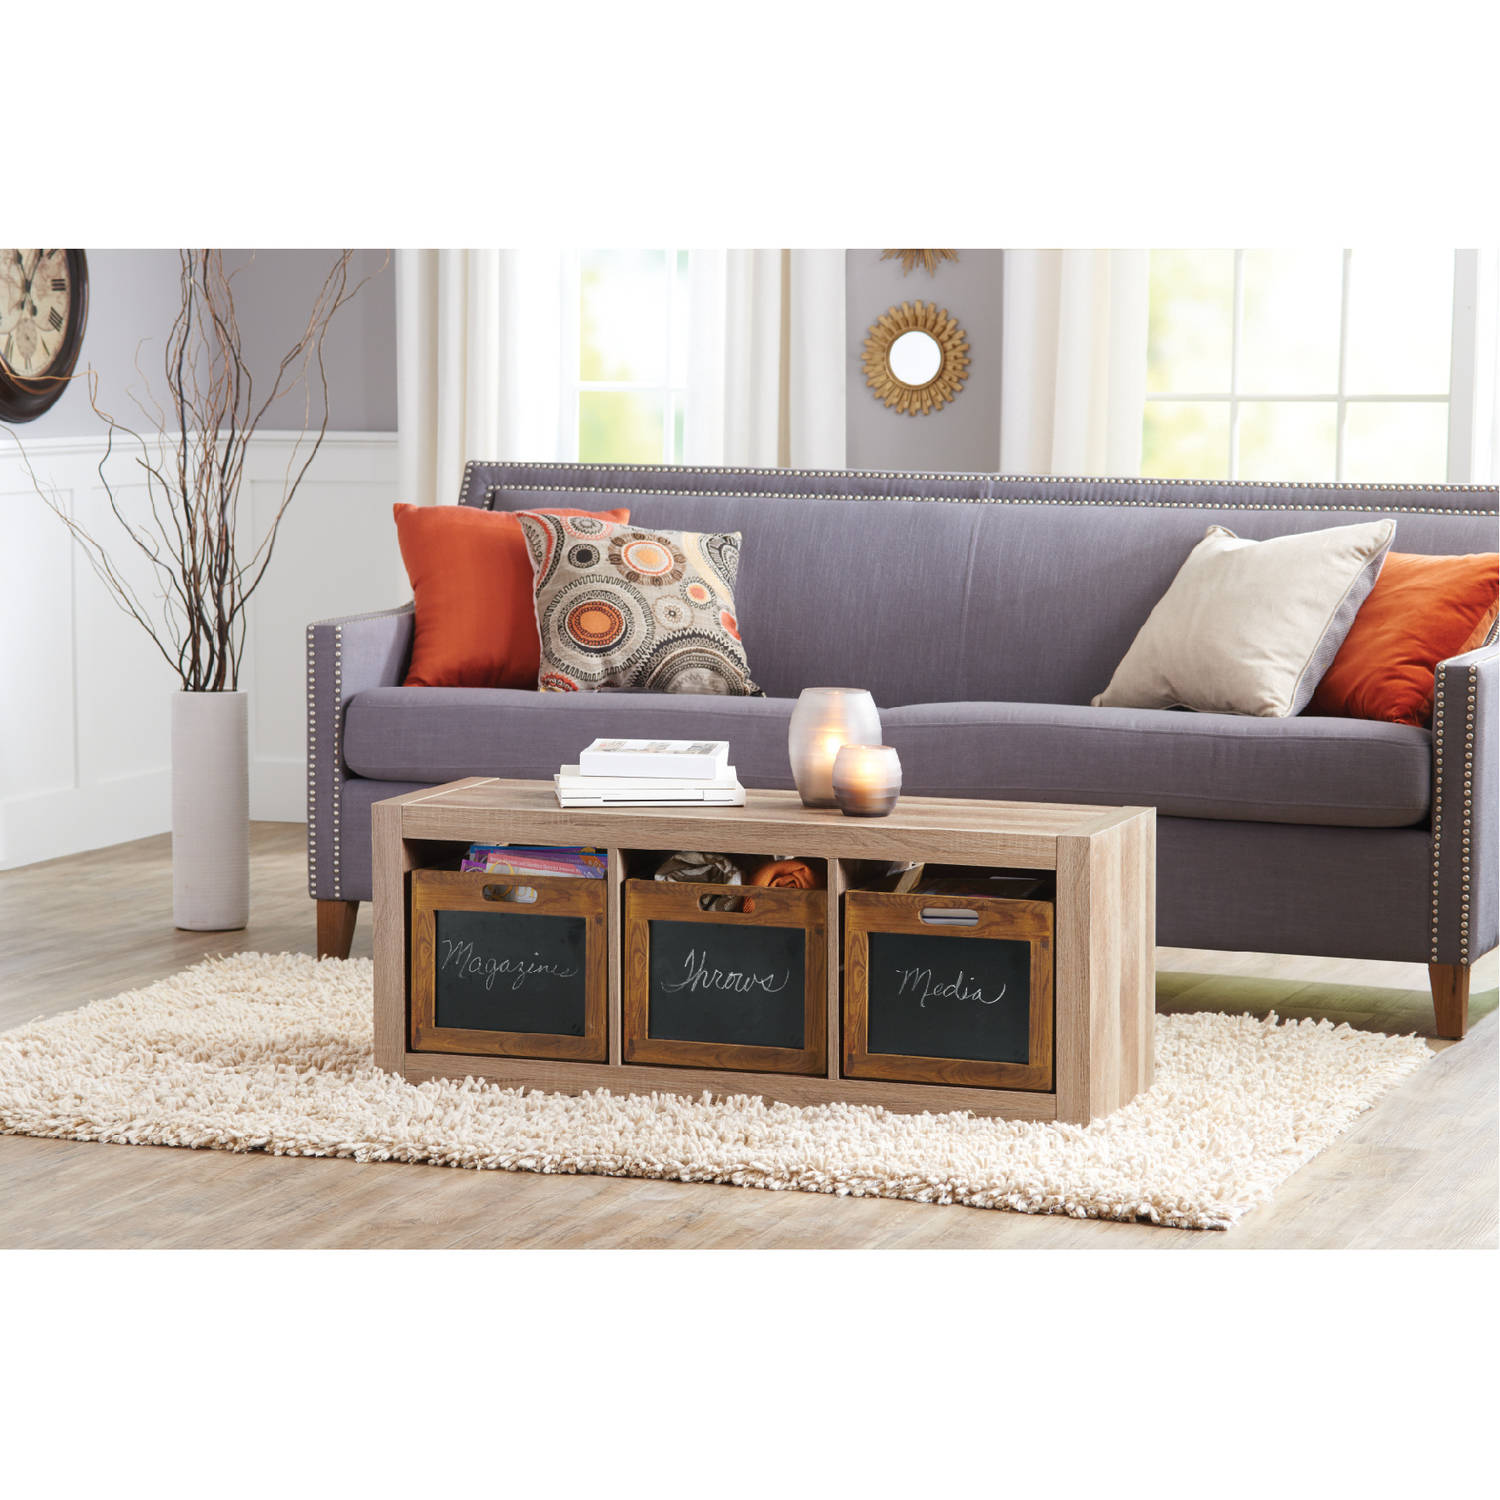 Better Homes and Gardens Wood Decor Crate